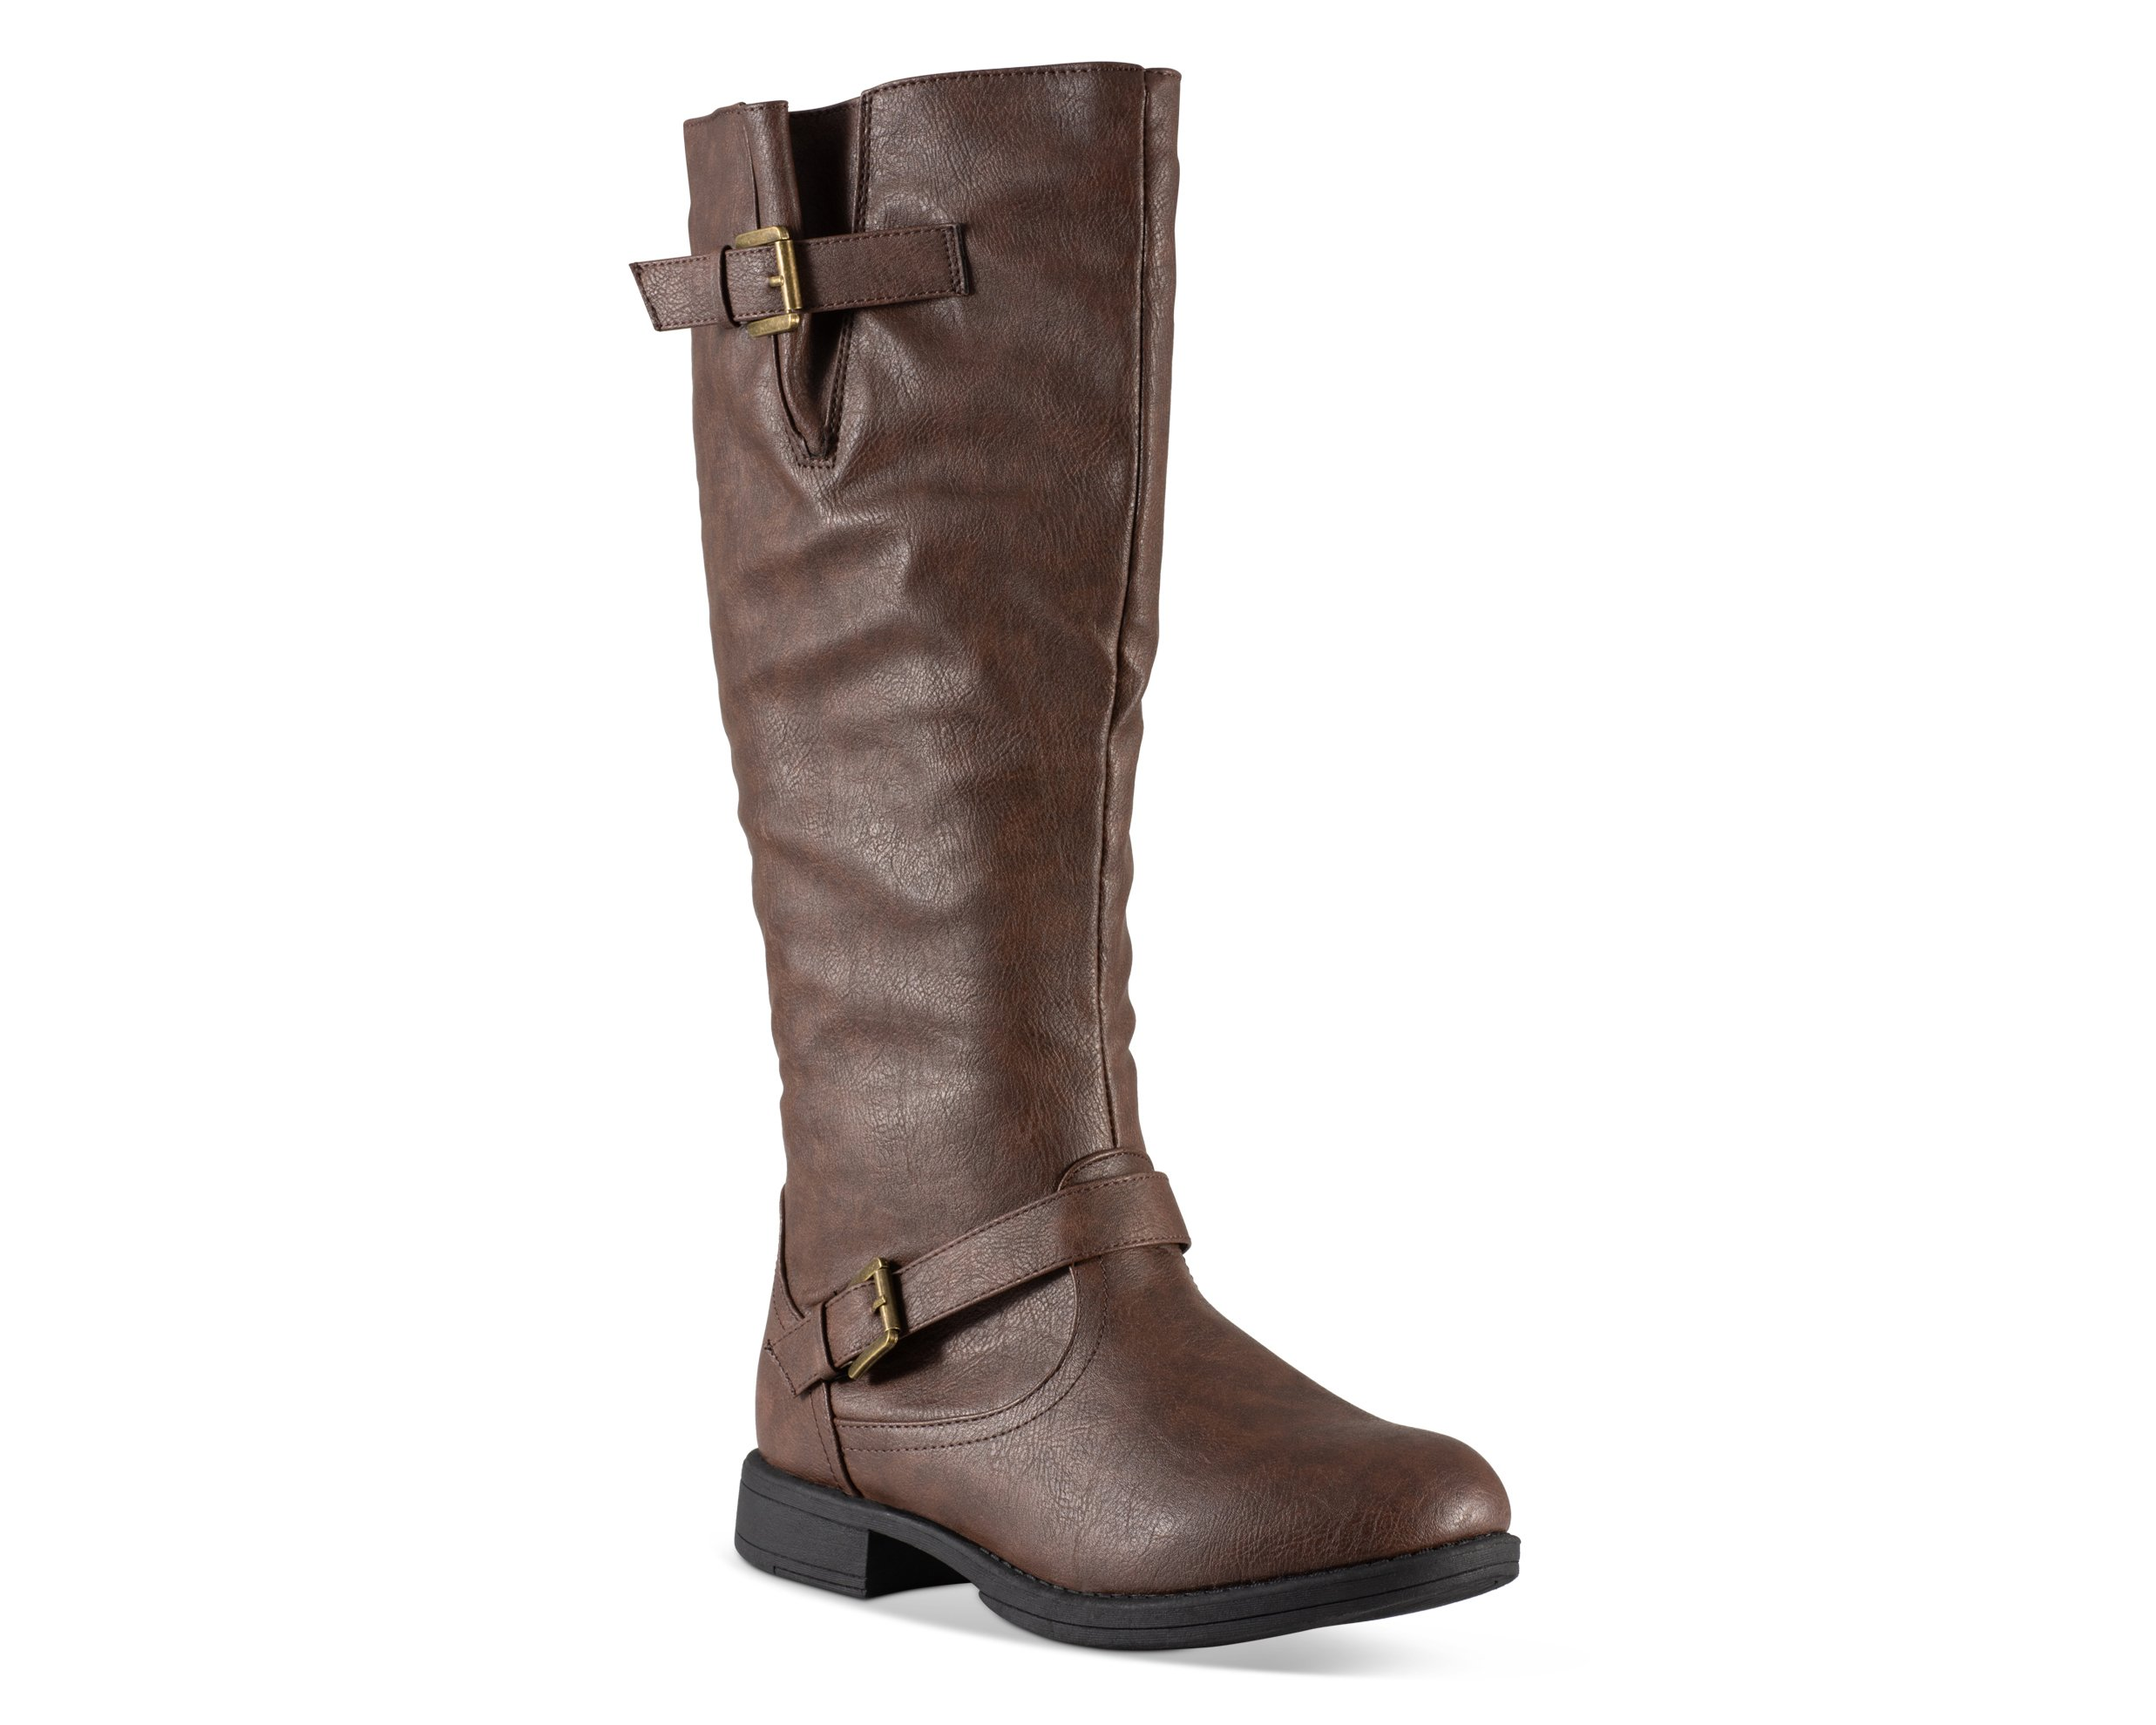 Twisted Women's Amira Wide Calf Knee-High Riding Boot- AMIRA01P LT Brown, Size 8